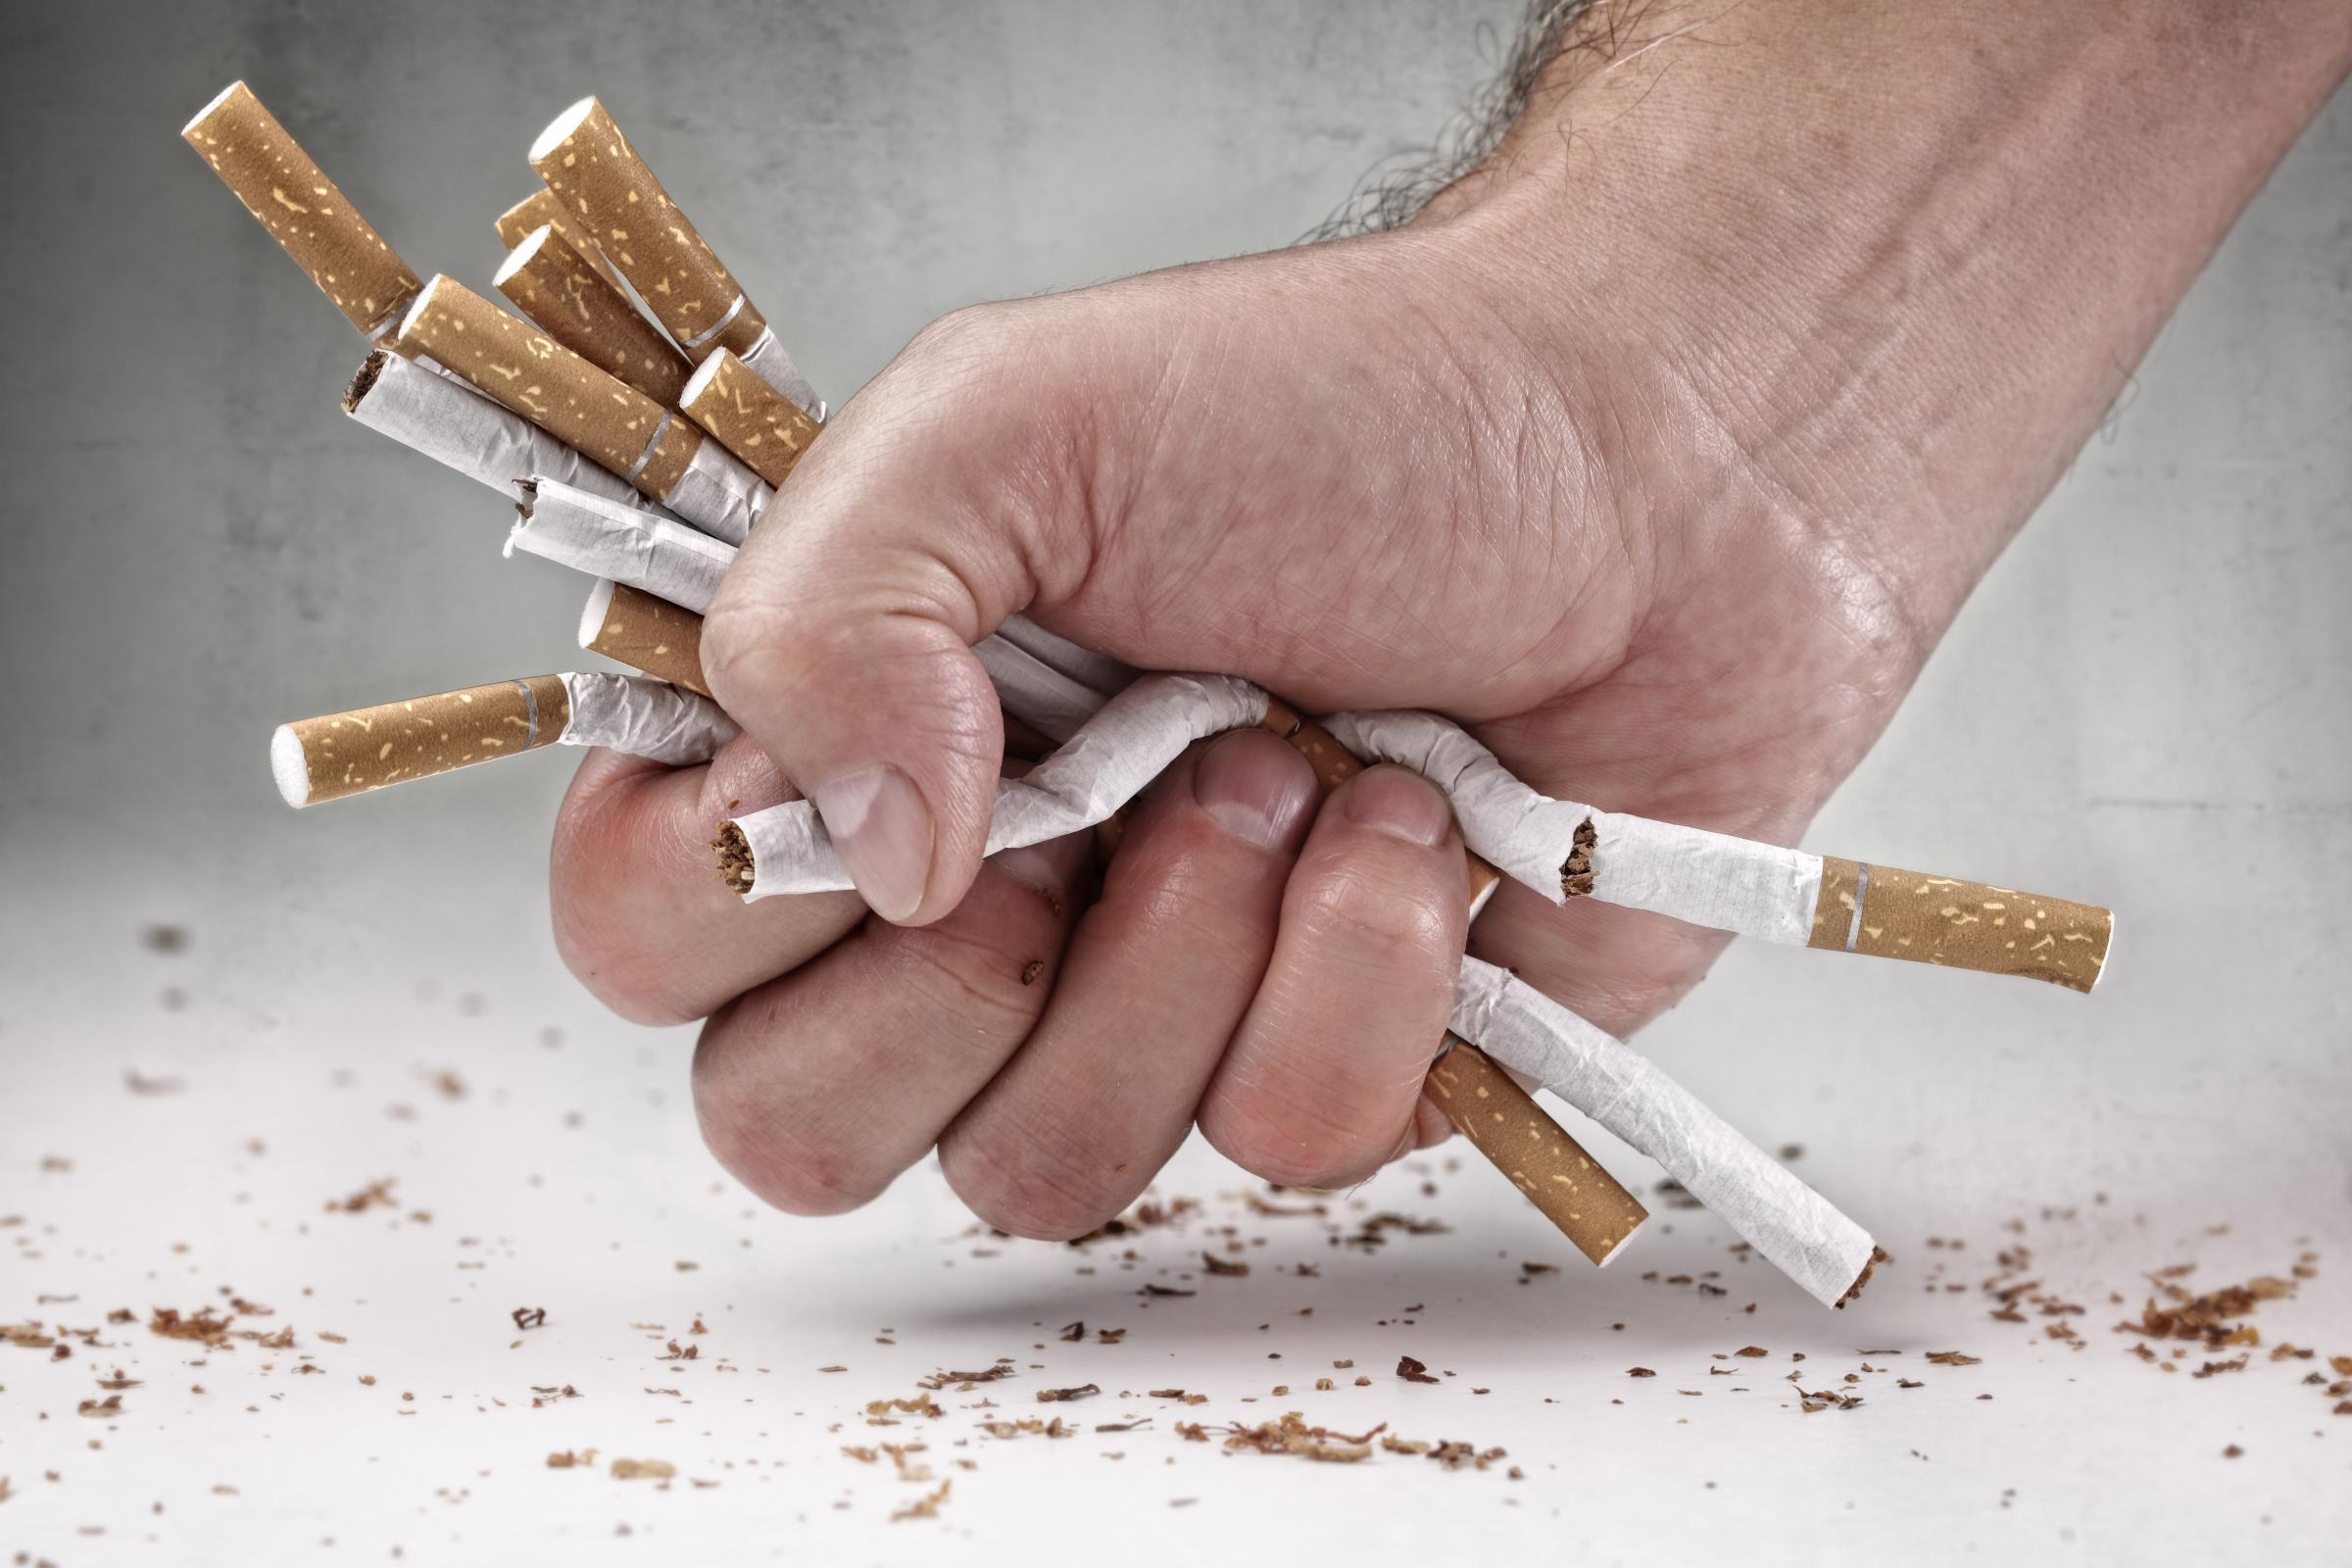 'Don't Be The 1' quit smoking campaign launches